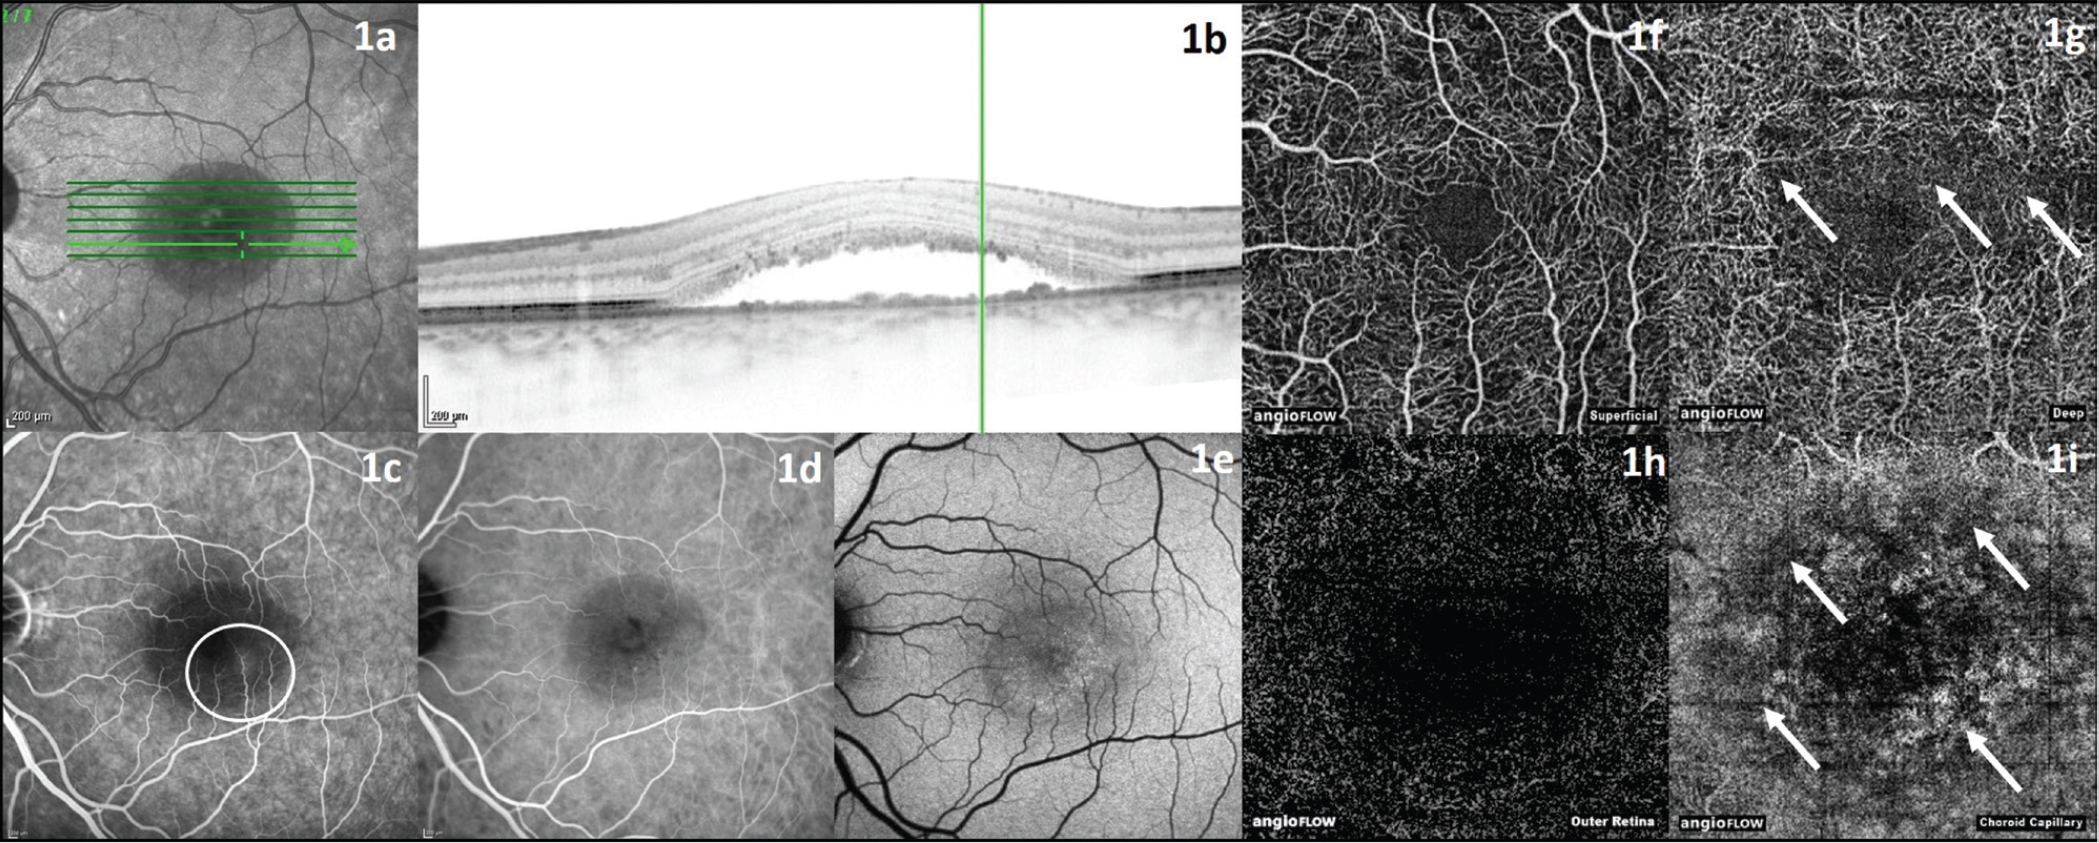 Left eye of a 37-year-old male patient with acute central serous chorioretinopathy. (A, B) Infrared and optical coherence tomography (OCT) image showing retinal detachment. (C) Fluorescein angiography image with leakage point (white circle). (D) Indocyanine green angiography image: Area with detached retina is discernable from attached retina, leakage point is not clearly visible. (E) Fundus autofluorescence image with discernable detached retina. (F) OCT angiography (OCTA) image of superficial retinal vessels. (G) OCTA image of deep retinal vessels with rarefication of vessels (white arrows). (H) OCTA image of outer retina. (I) OCTA image of choroid capillaries with abnormal flow pattern in the perifoveal region (white arrows).